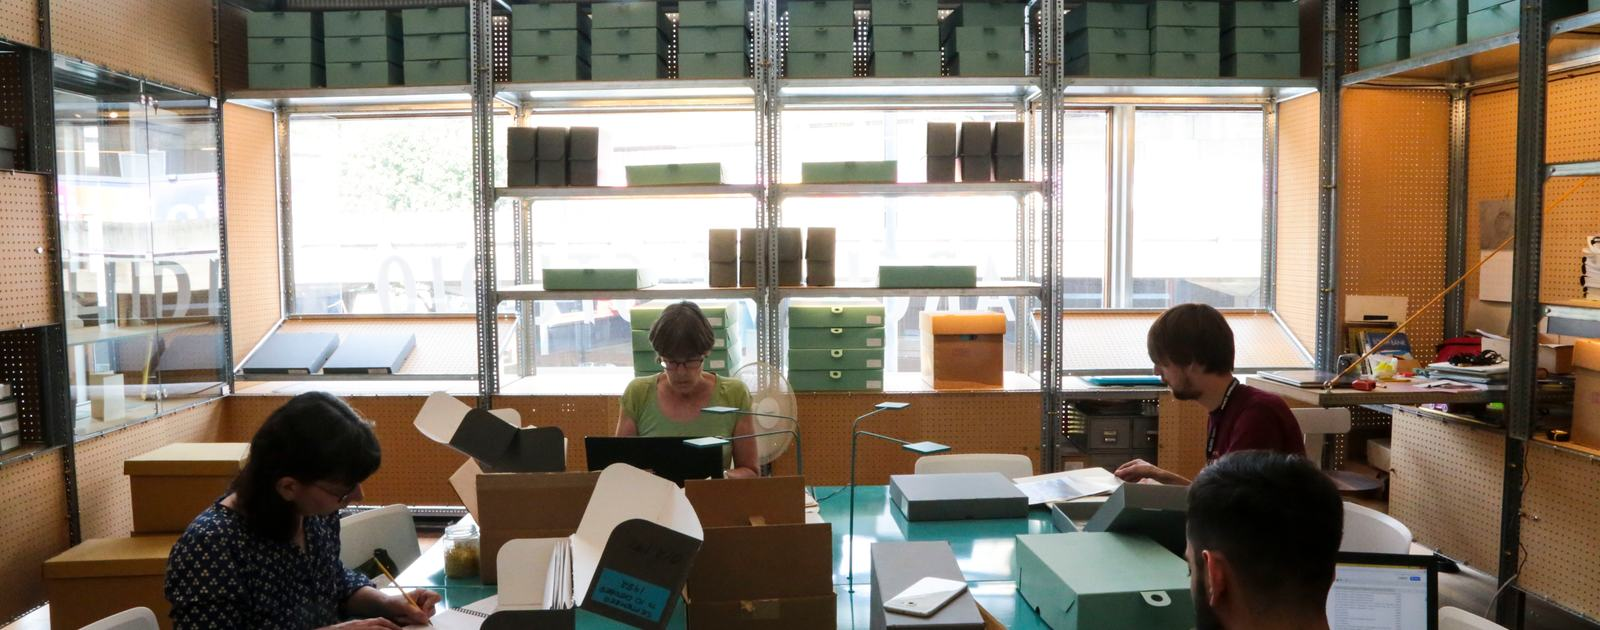 Southbank Centre Archive.Researchers and Staff.August 2016